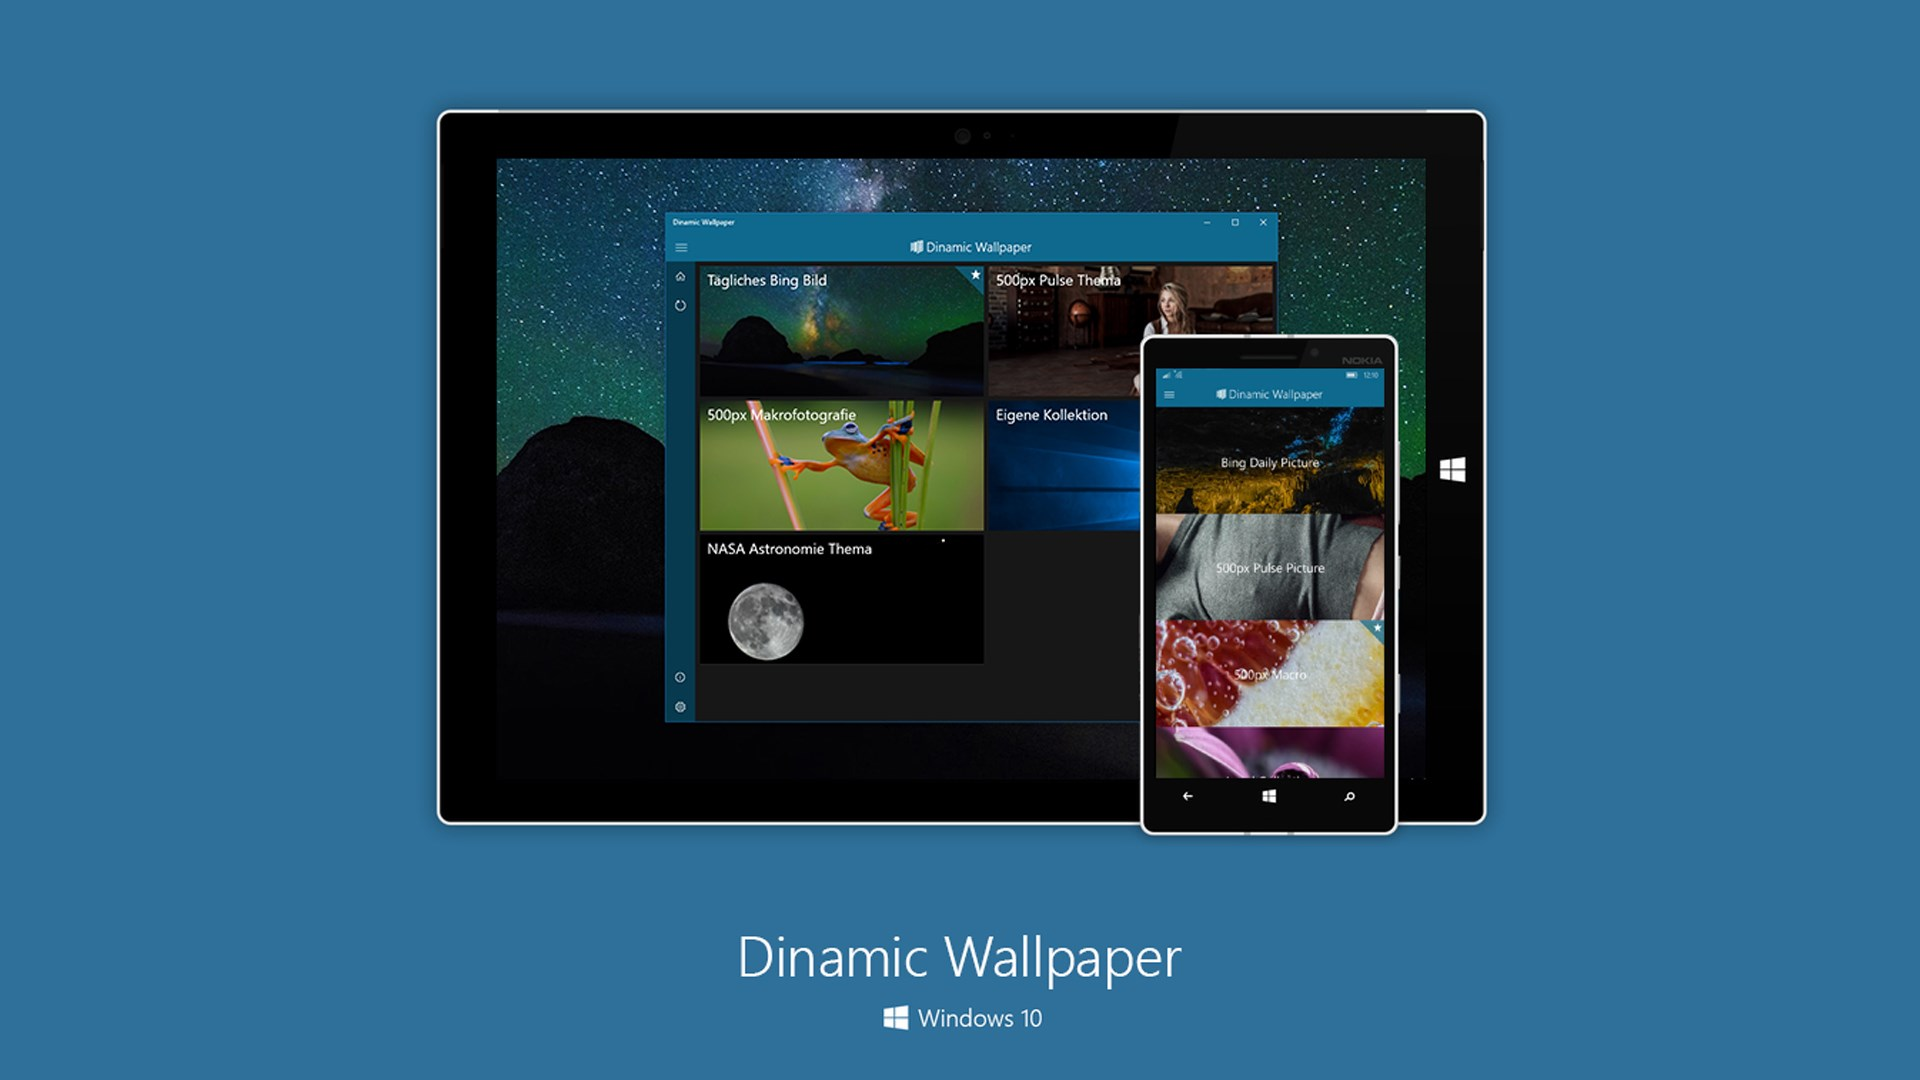 Get Dinamic Wallpaper - Microsoft Store